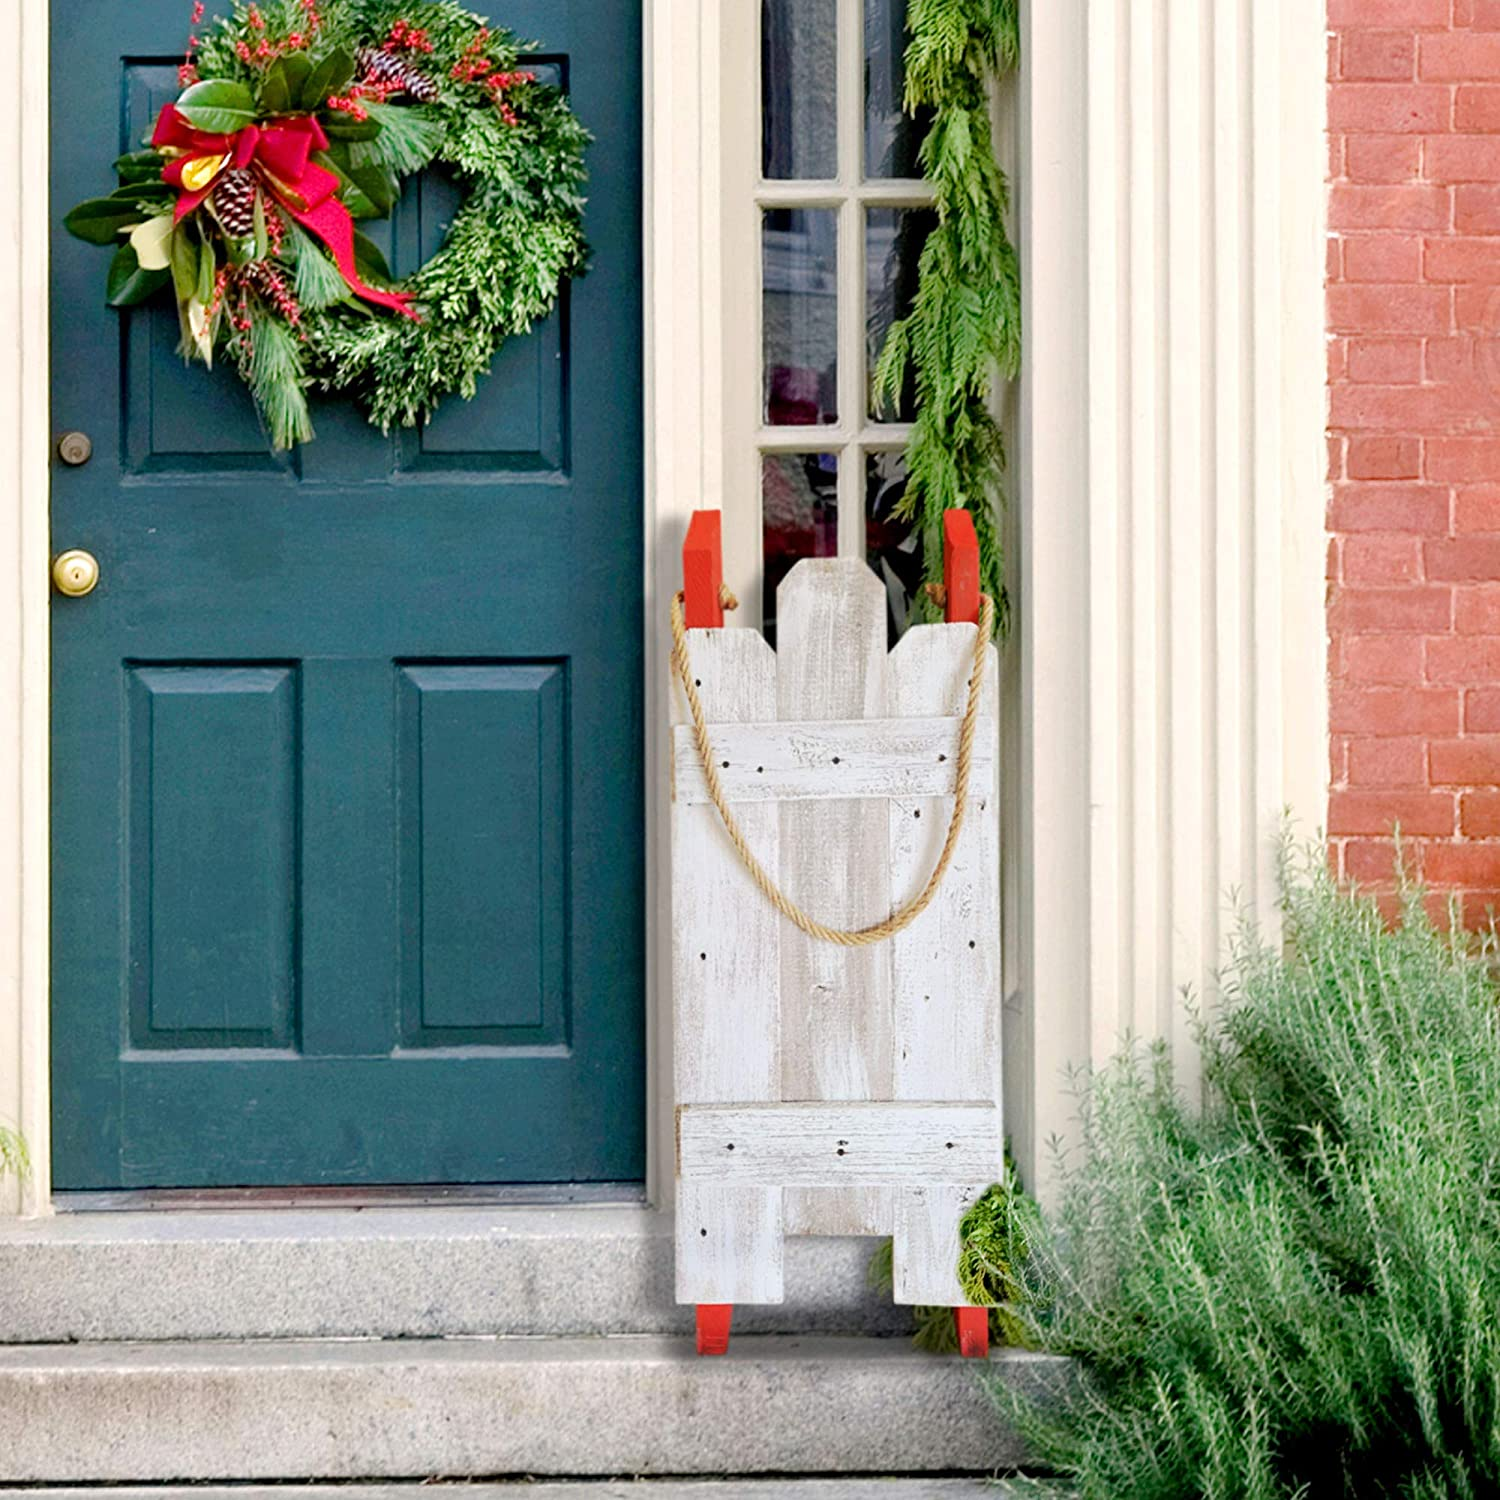 Rustic Wood Sled for Christmas - Holiday Porch Decor - Hand-Painted and Made with Reclaimed Wood (White-Red)